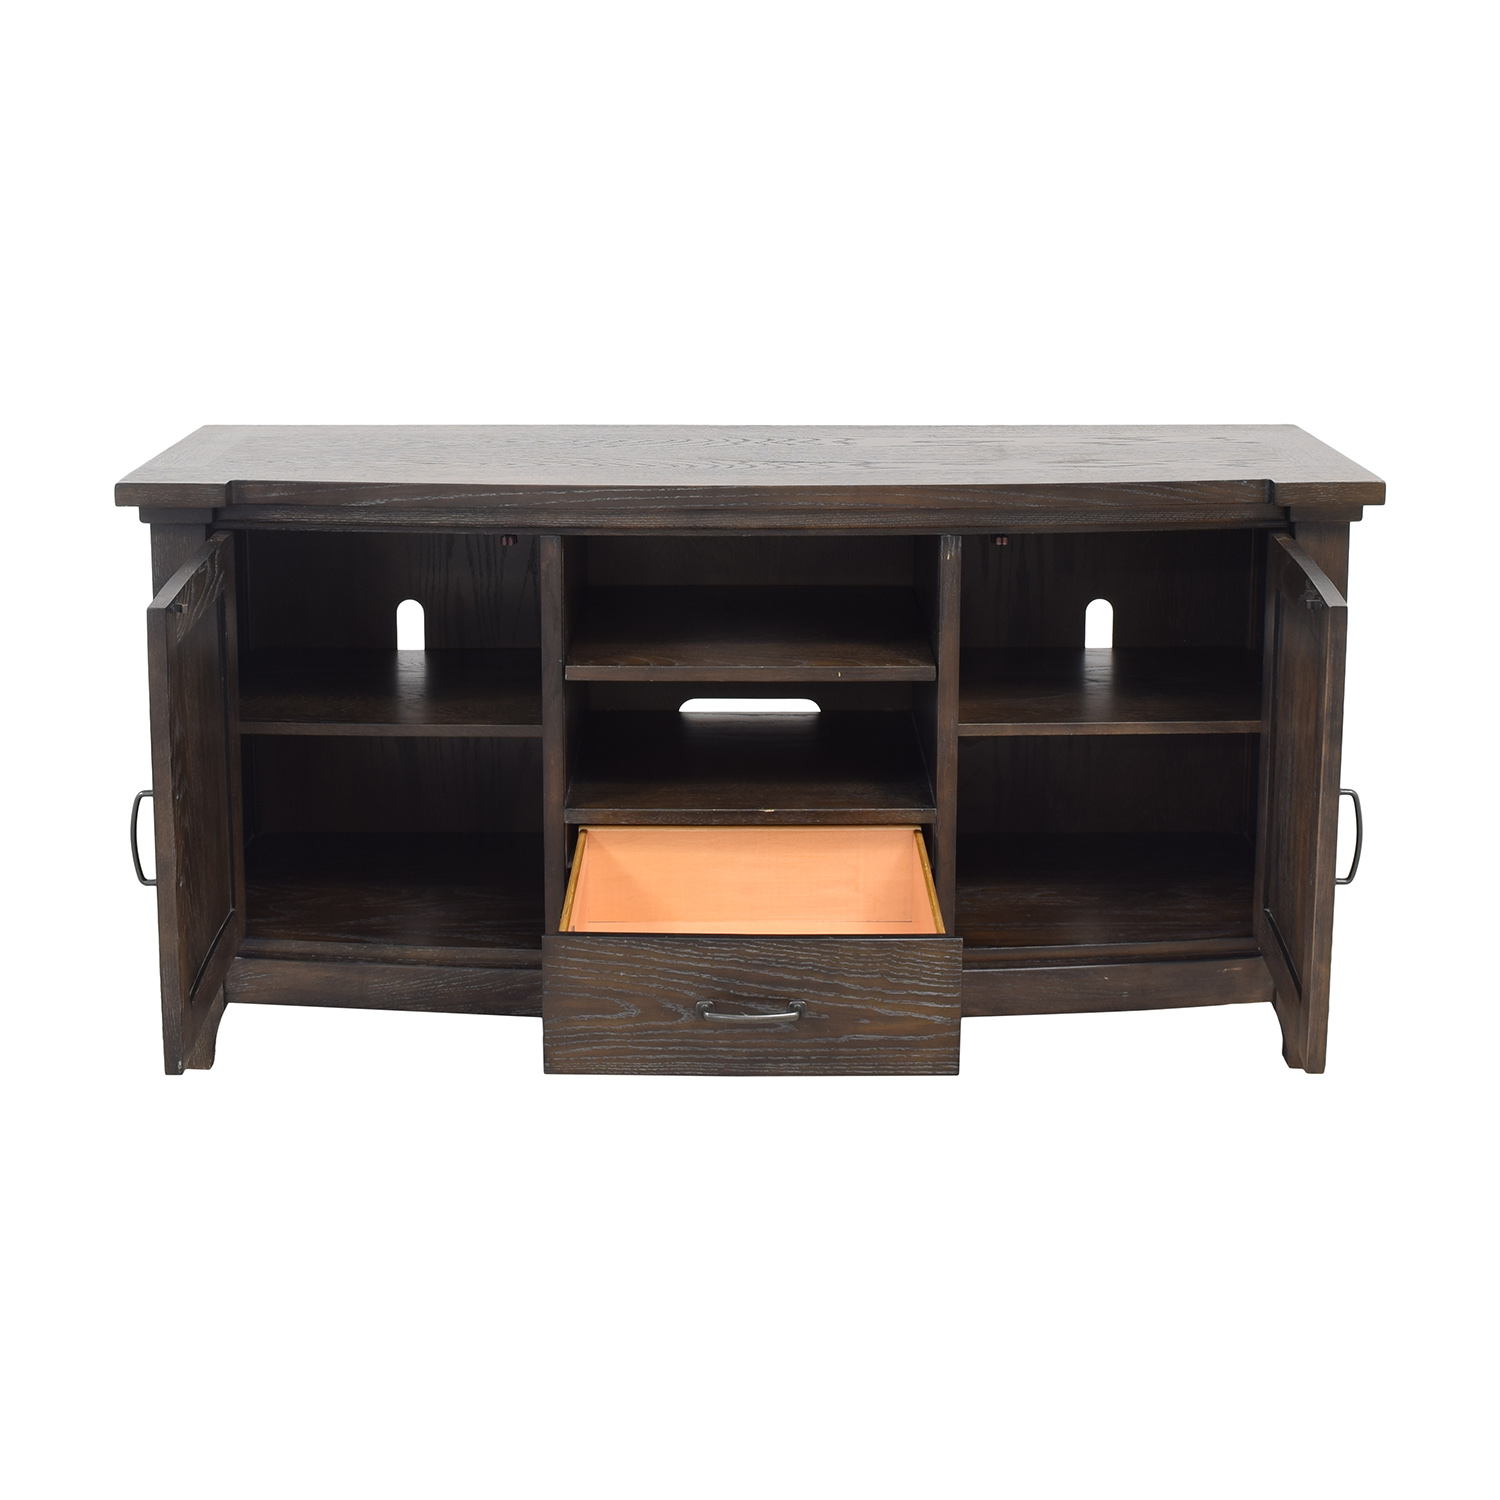 Broyhill Furniture Broyhill Furniture Media Stand nyc